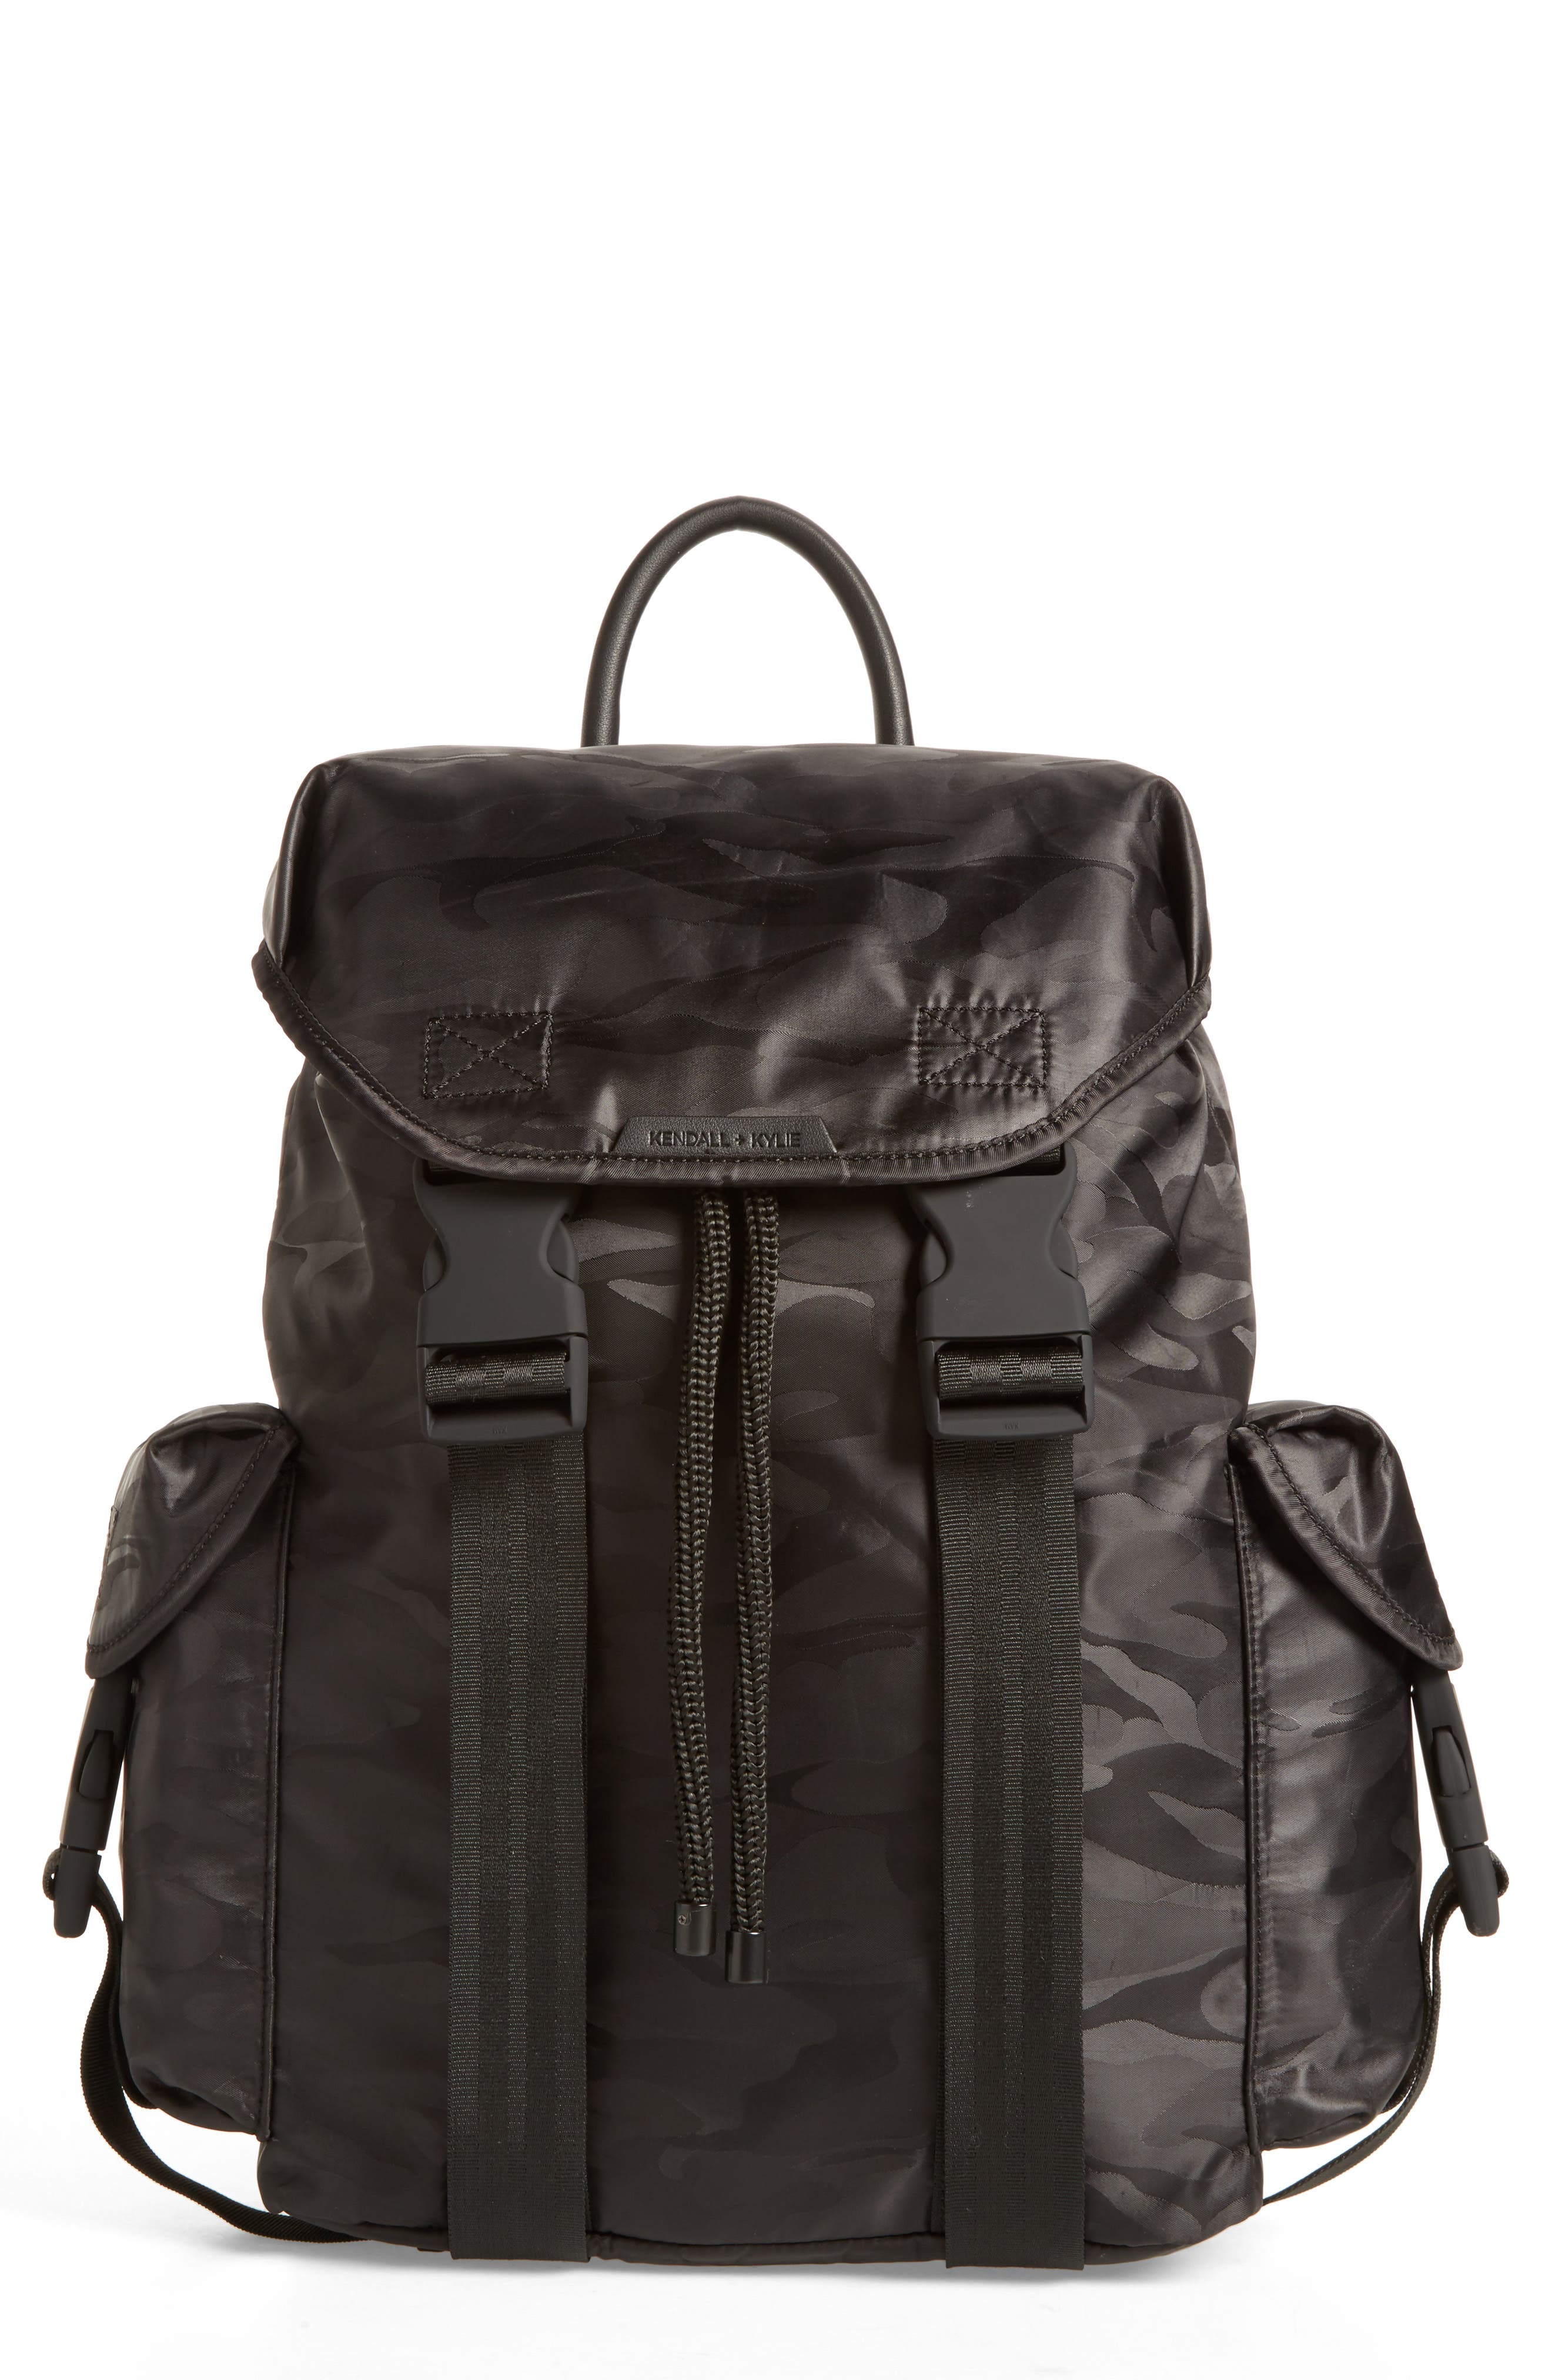 KENDALL + KYLIE Jordyn Nylon Backpack